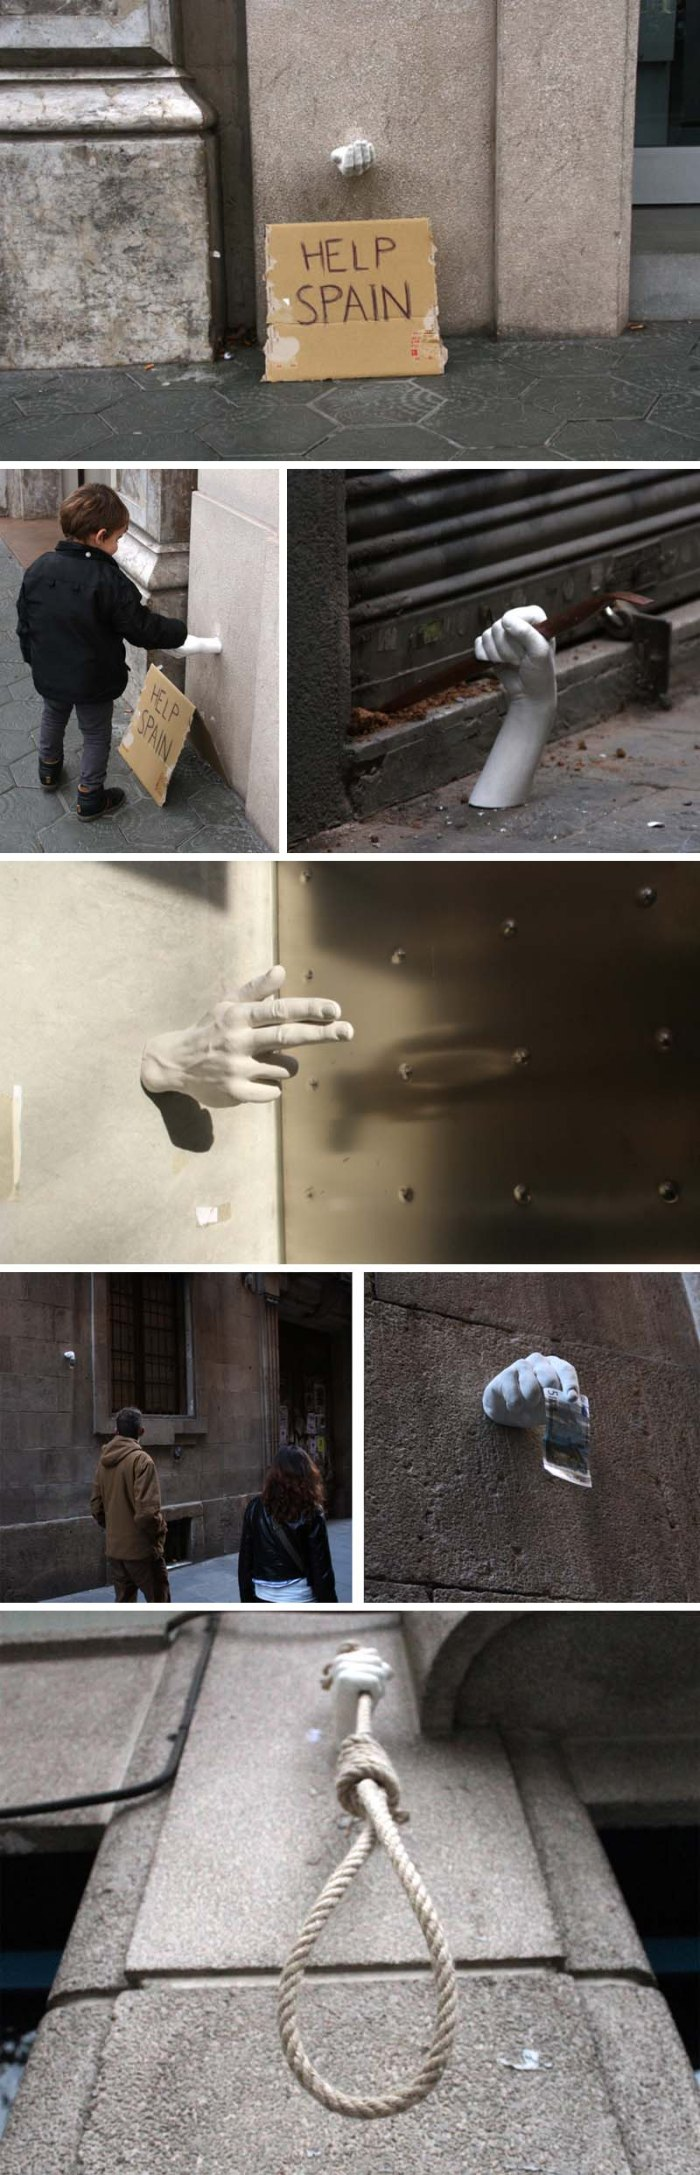 hands project, Manos, barcelona, octavi serra, mateu targa, daniel llugany, pau garcia, Street art in Spain, Graffiti